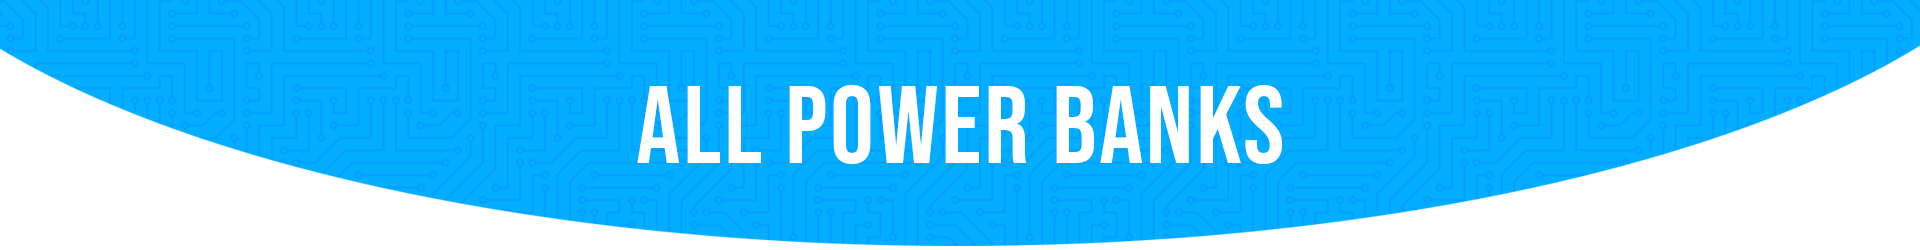 All-Power-Banks---banner.png